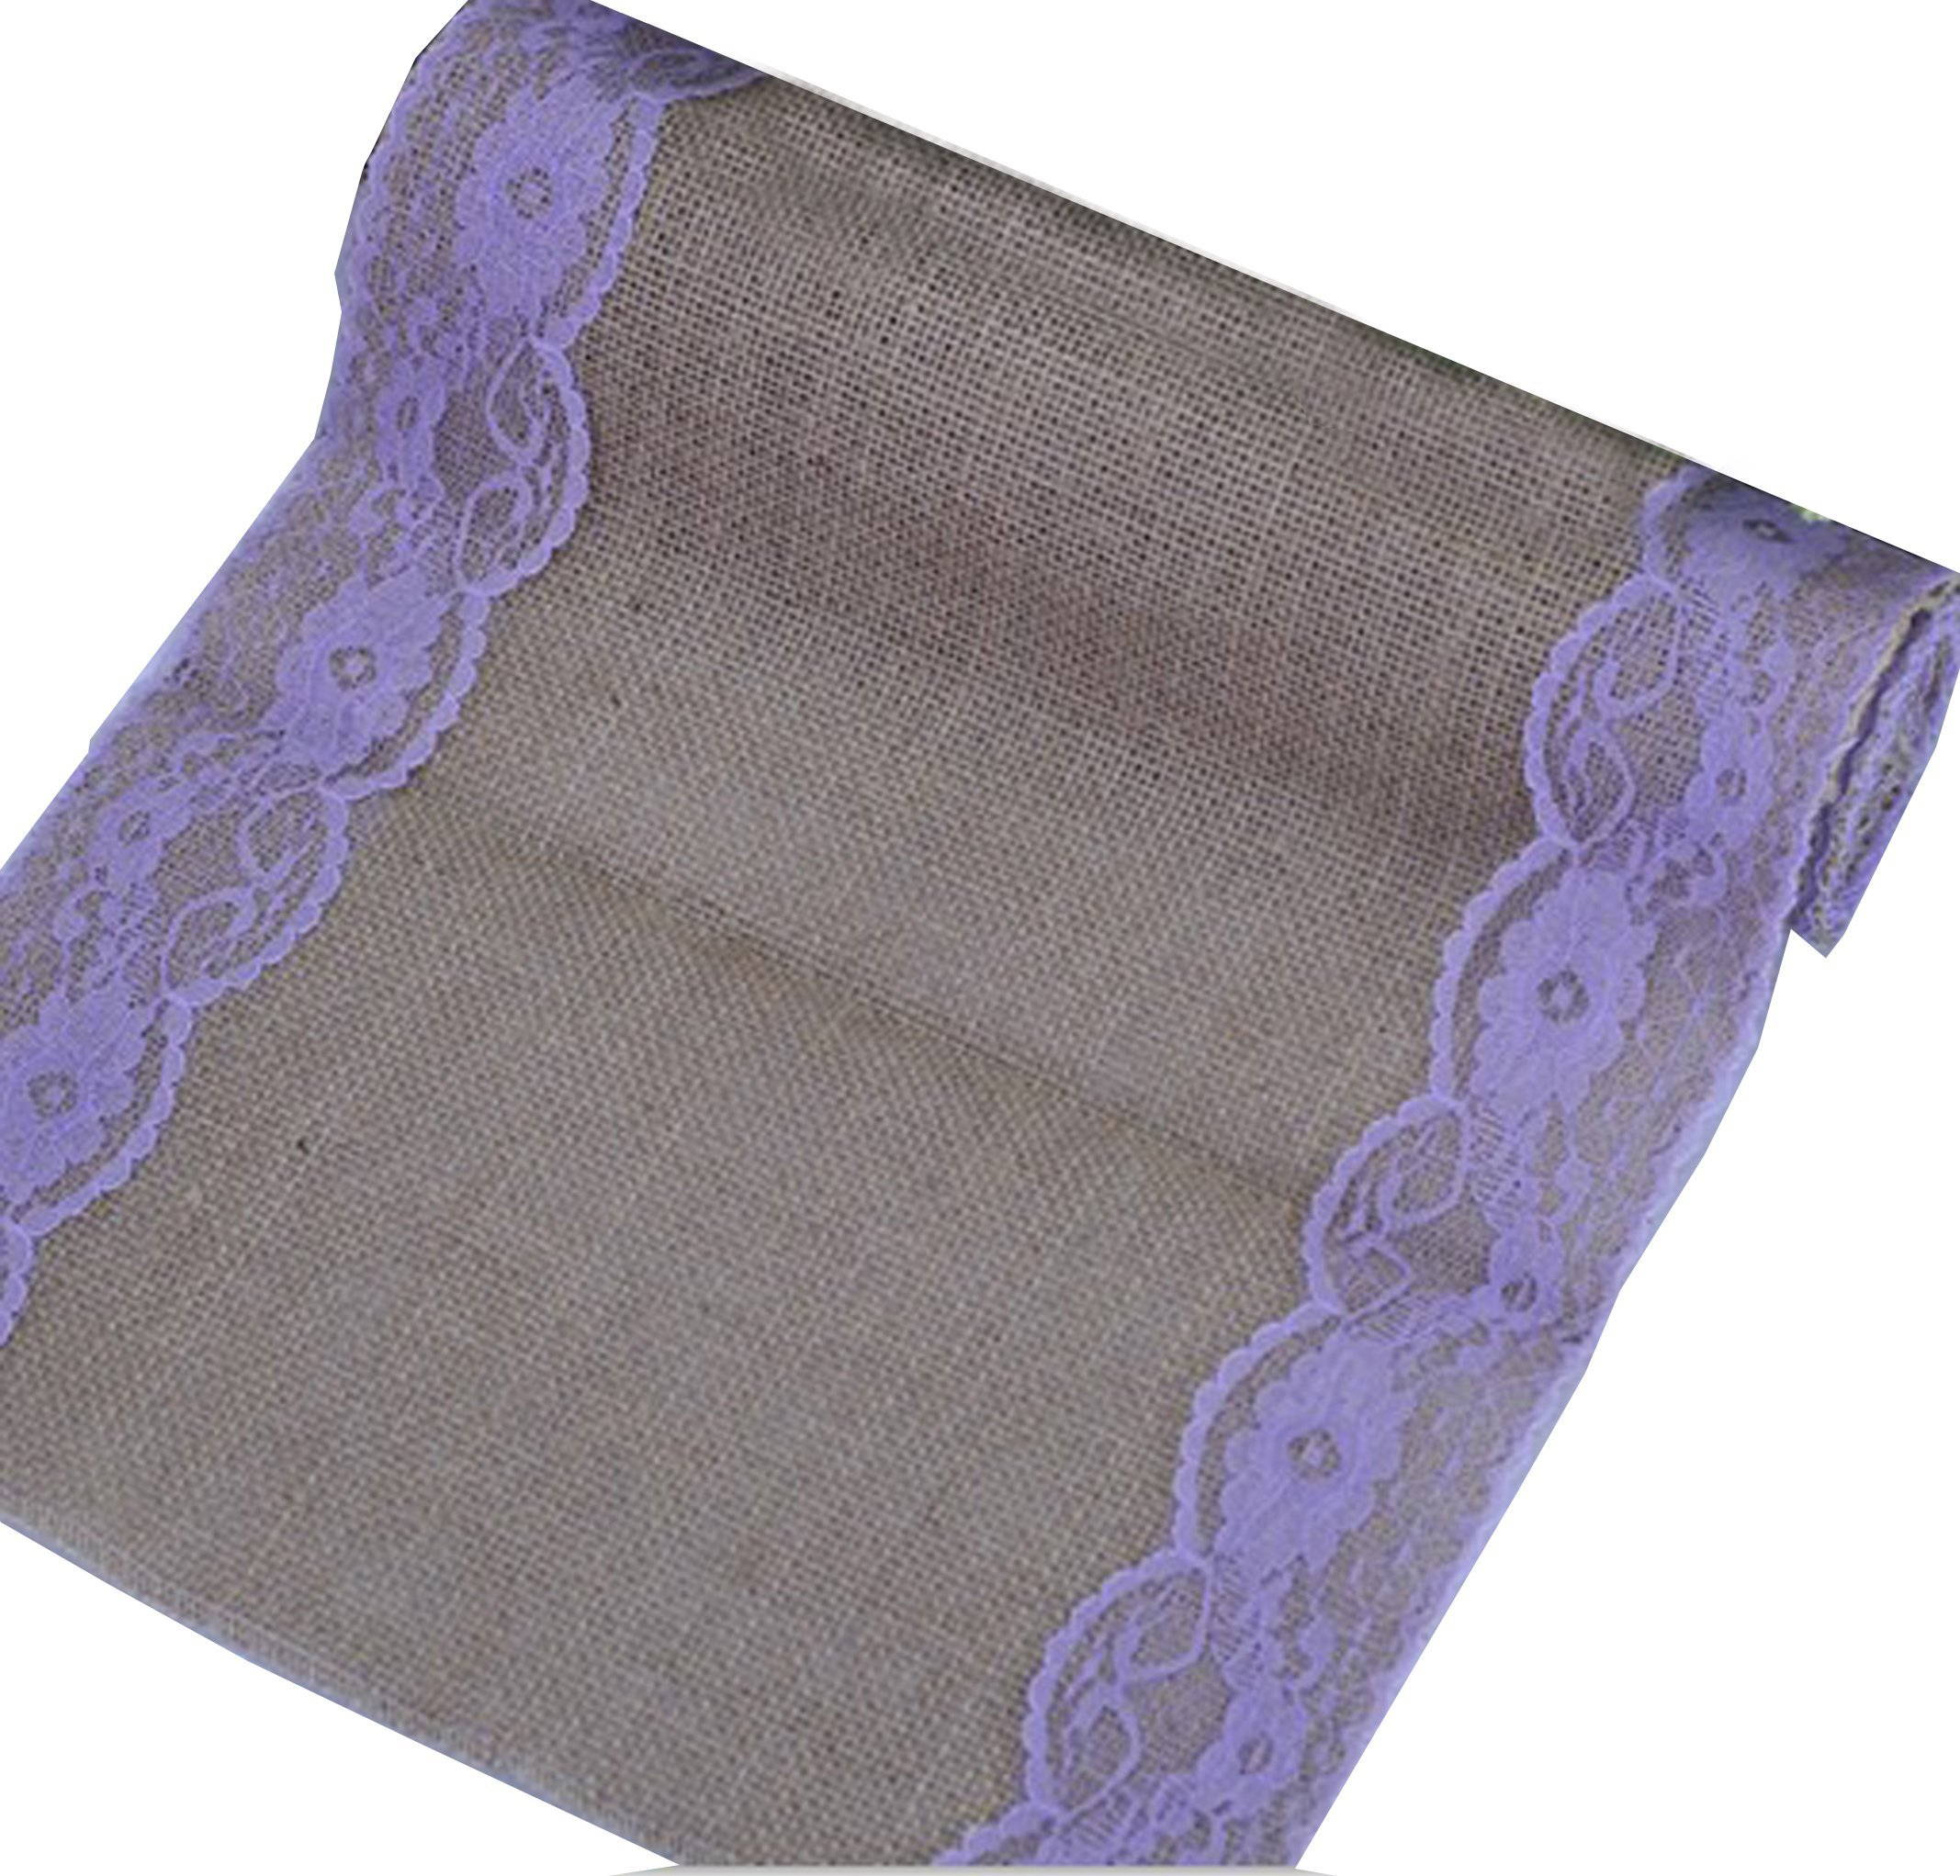 Huachnet Natural Jute Burlap Hessian Table Runner with Lace Trim Rustic Wedding Party Decor Sewing Craft 30*275CM (3 Yard) - Purple